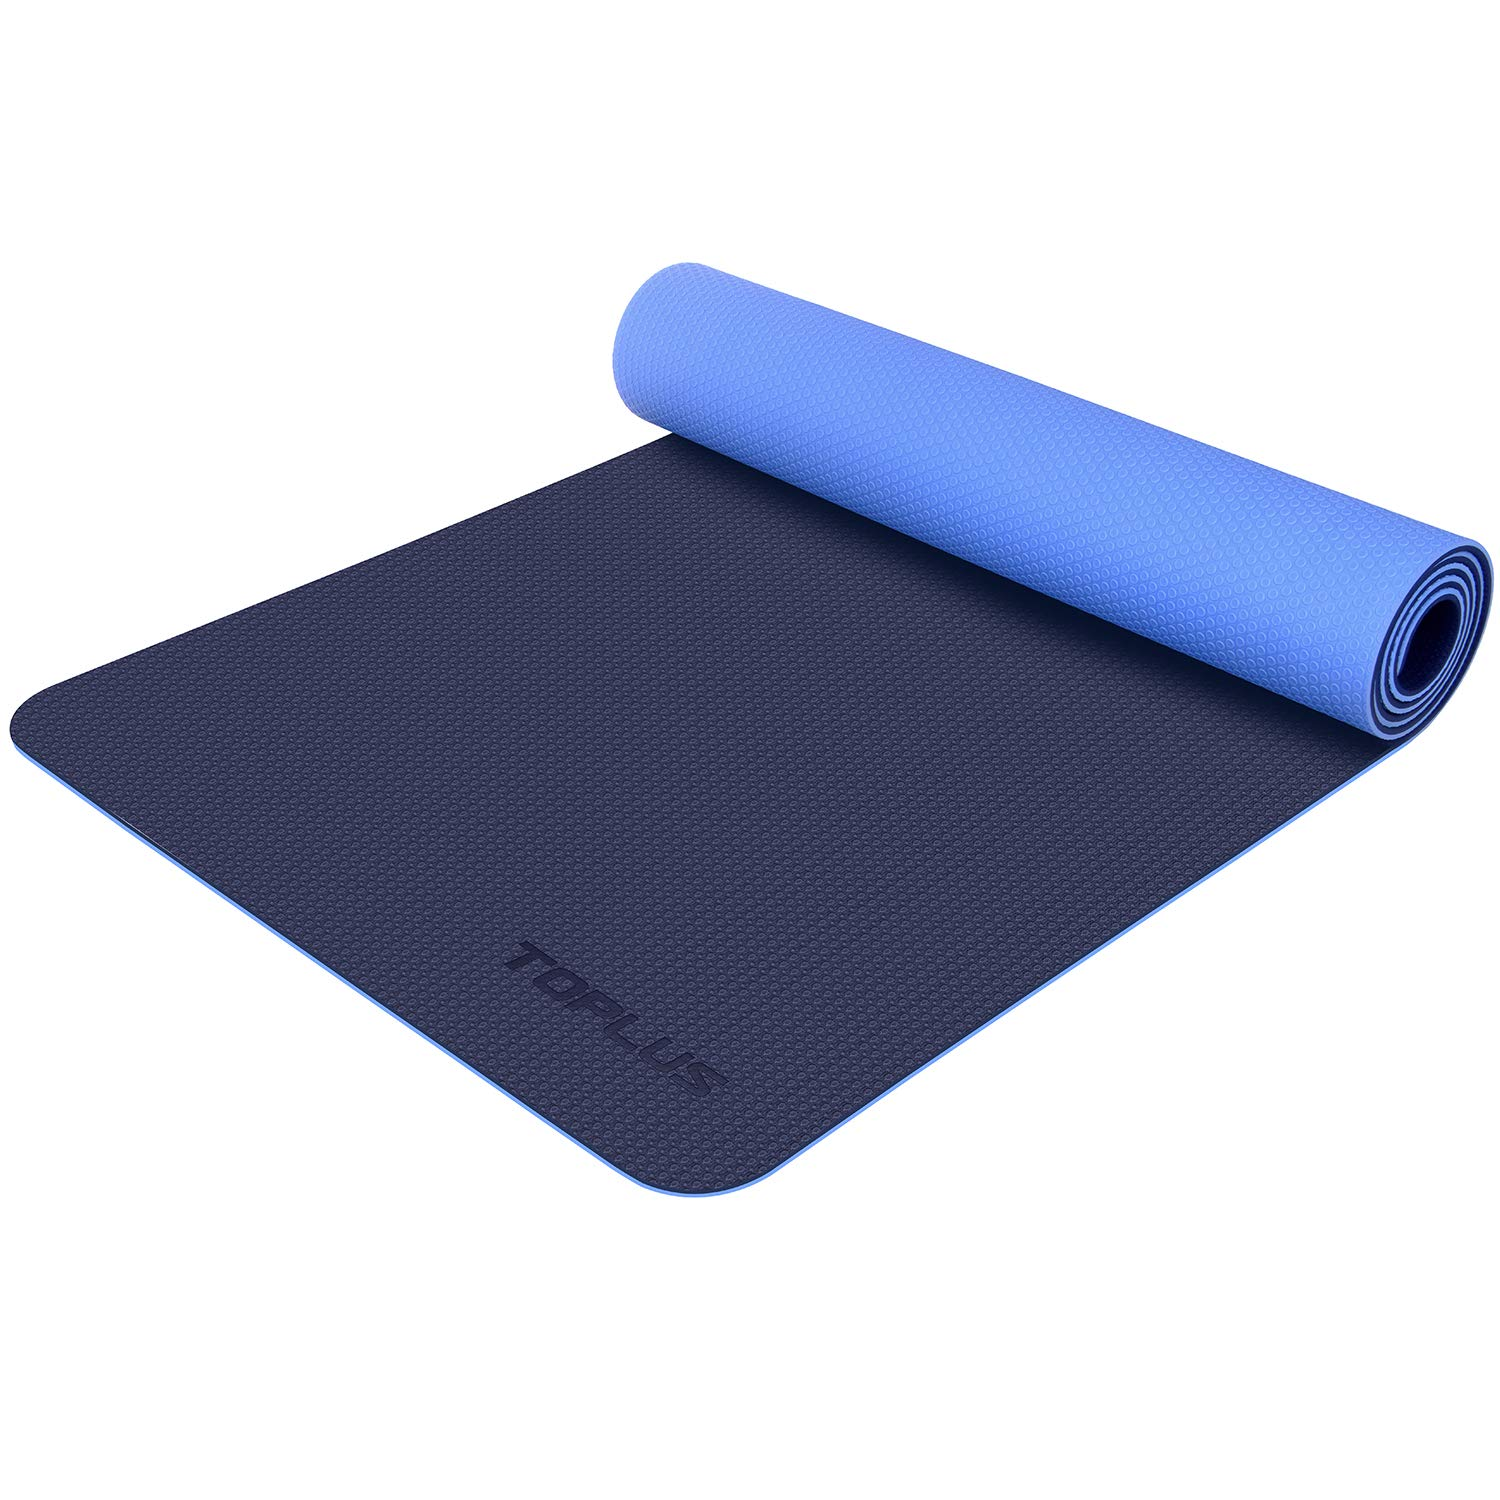 TOPLUS Yoga Mat- Premium 6mm Extra Thick Yoga Mat Eco Friendly Non-Slip Exercise & Fitness Mat with Carrying Strap for All Type of Yoga, Pilates and Floor Exercises, Texture Upgraded Series UP-01